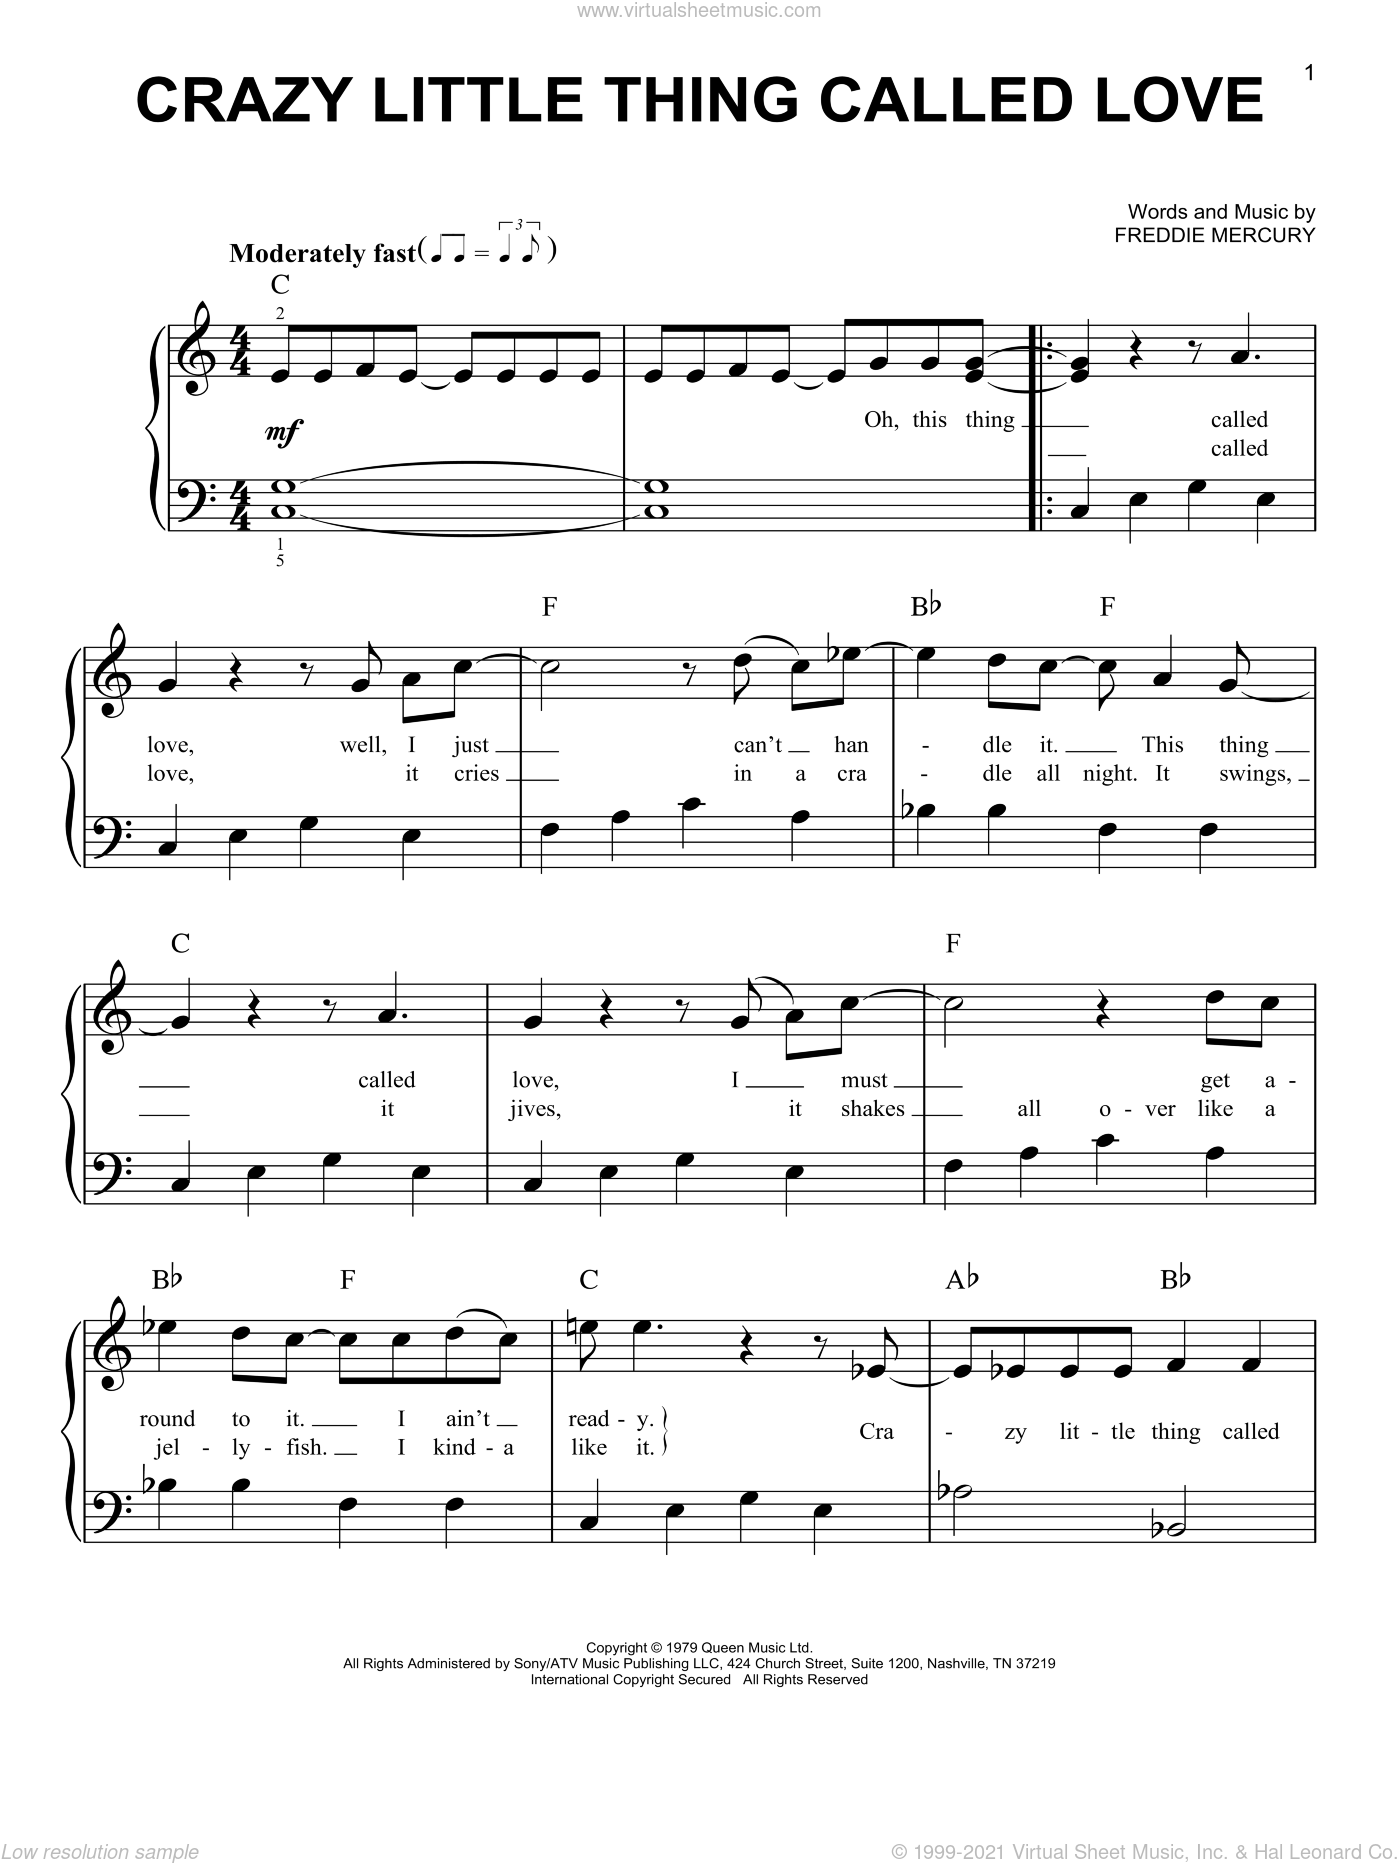 Crazy Little Thing Called Love sheet music for piano solo (chords) by Freddie Mercury